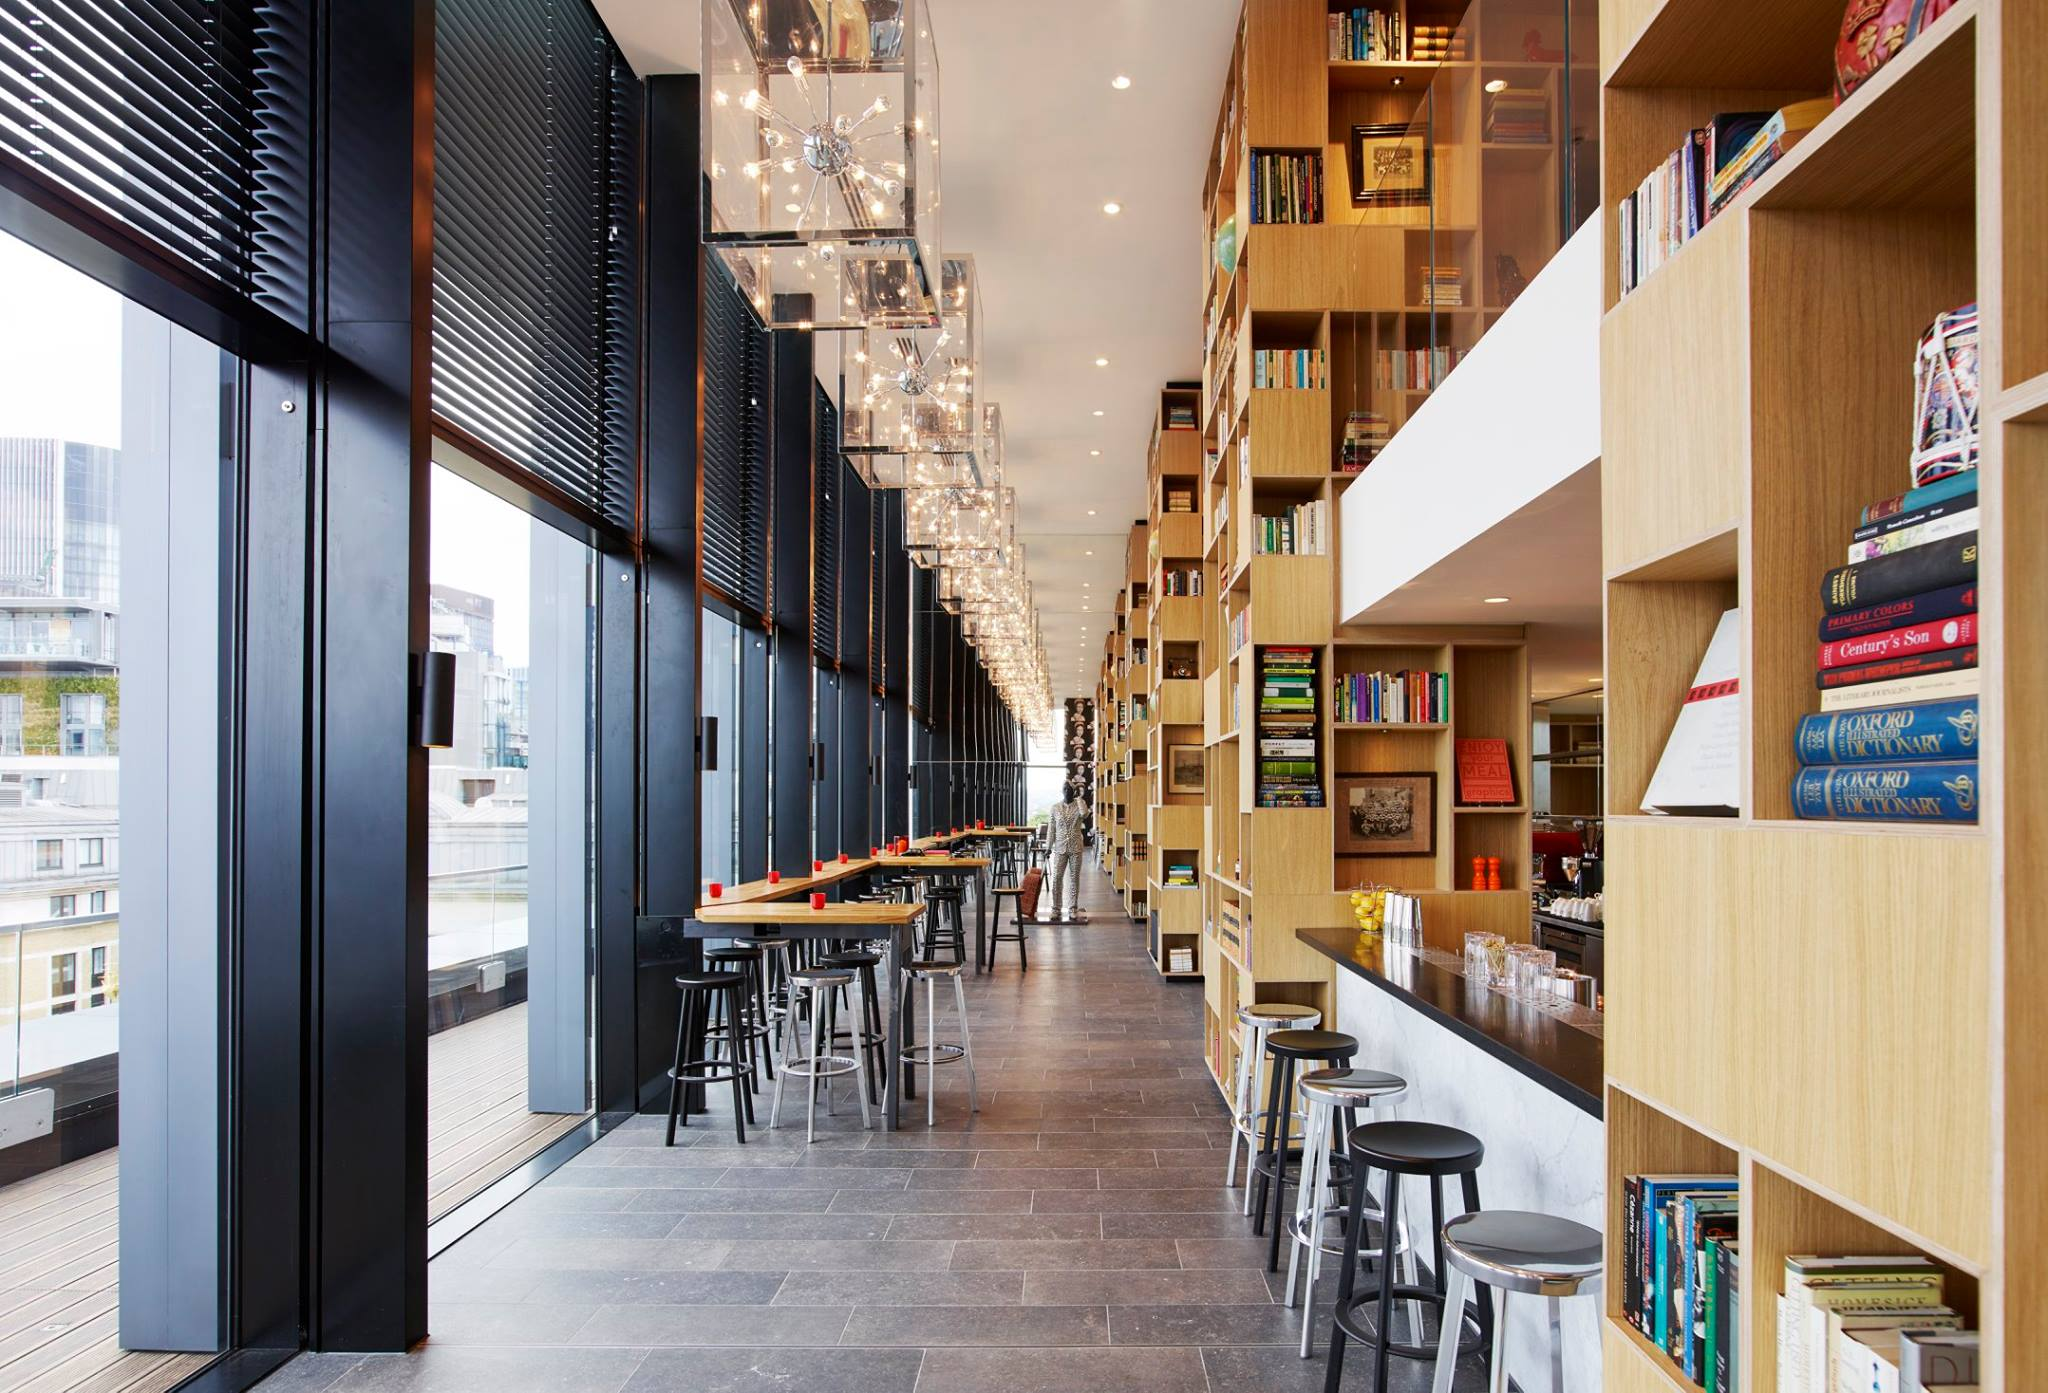 Grand opening of citizenm s new flagship hotel in london for Citizenm hotel london